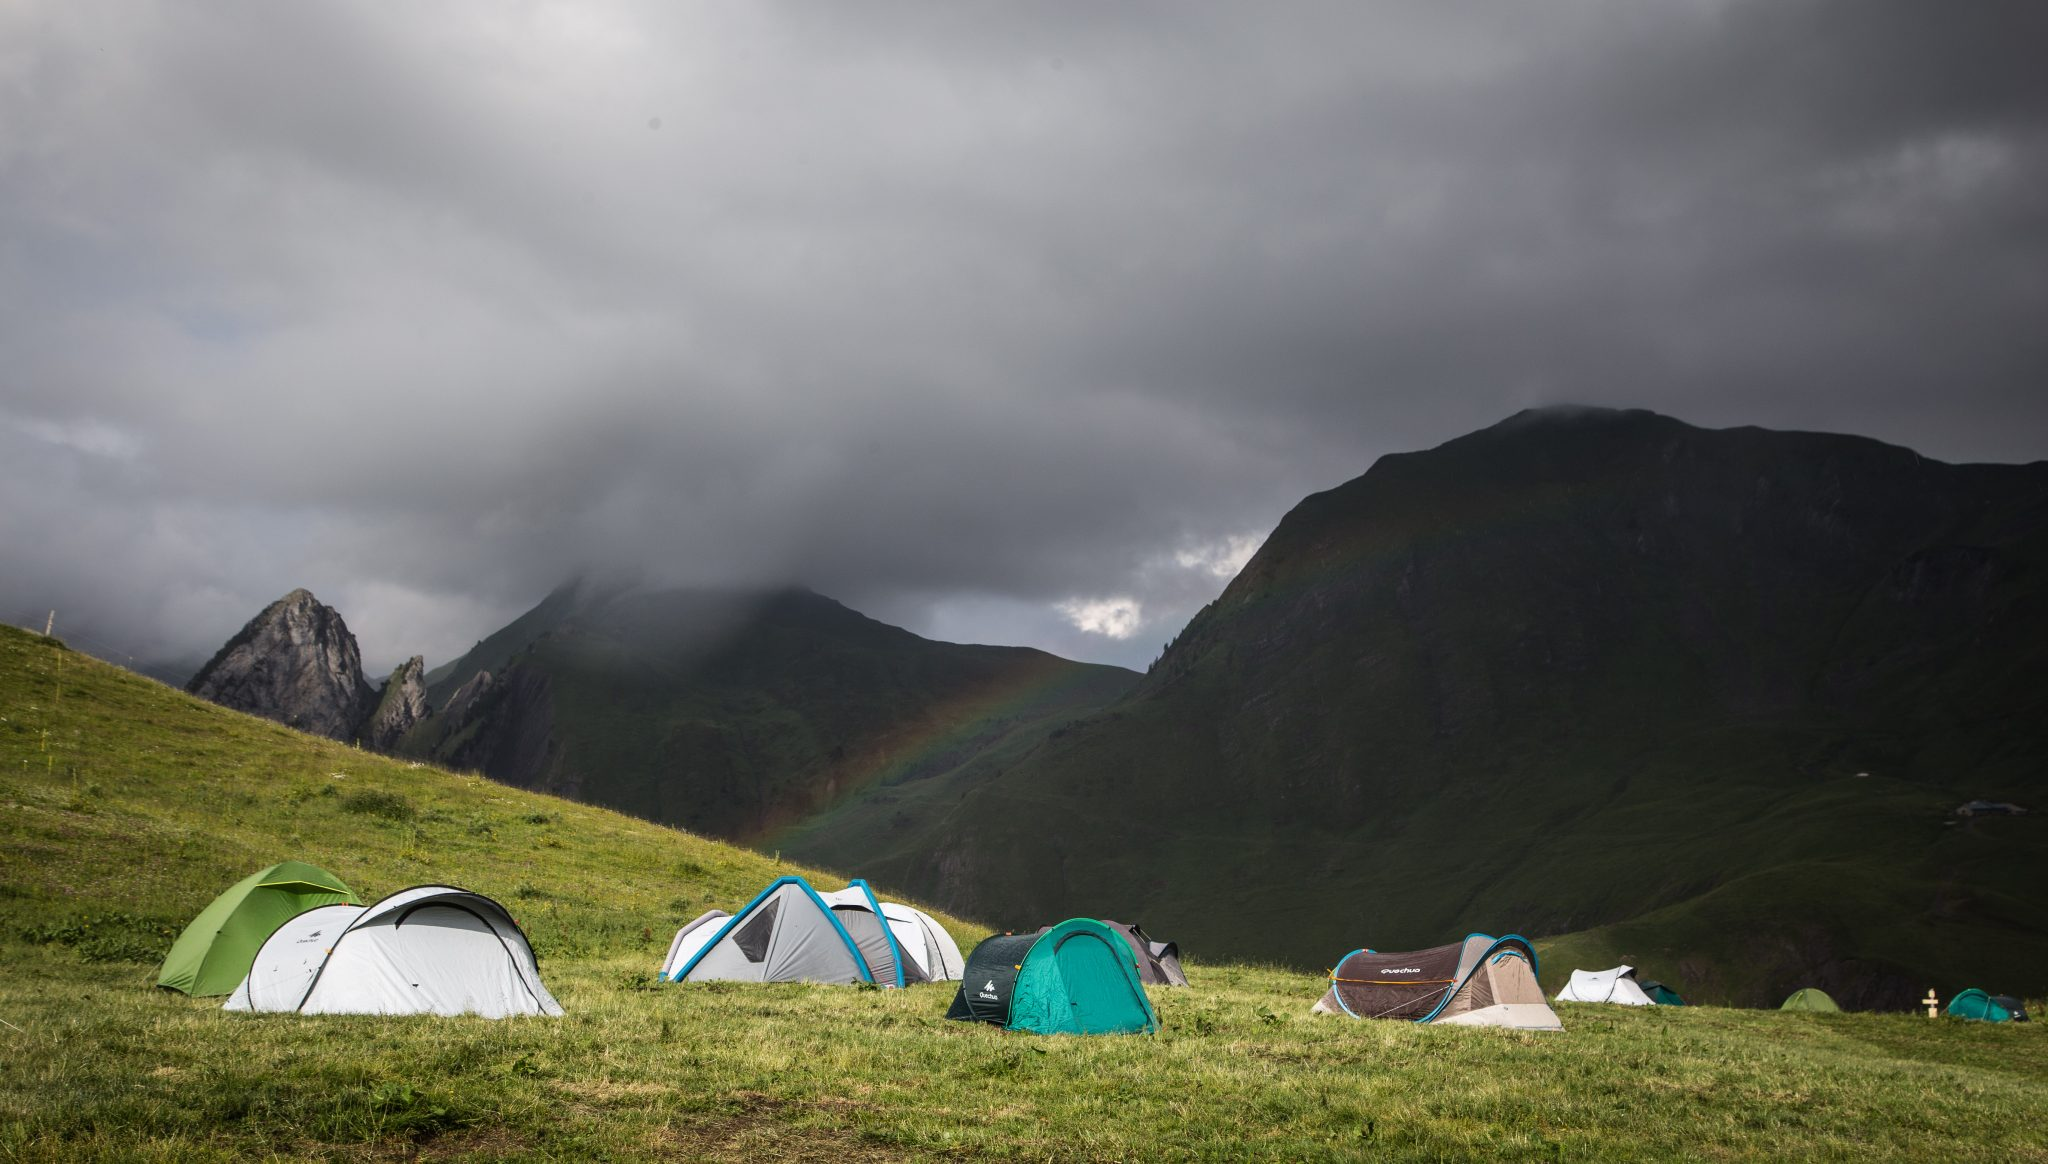 Bivouac over the rainbow